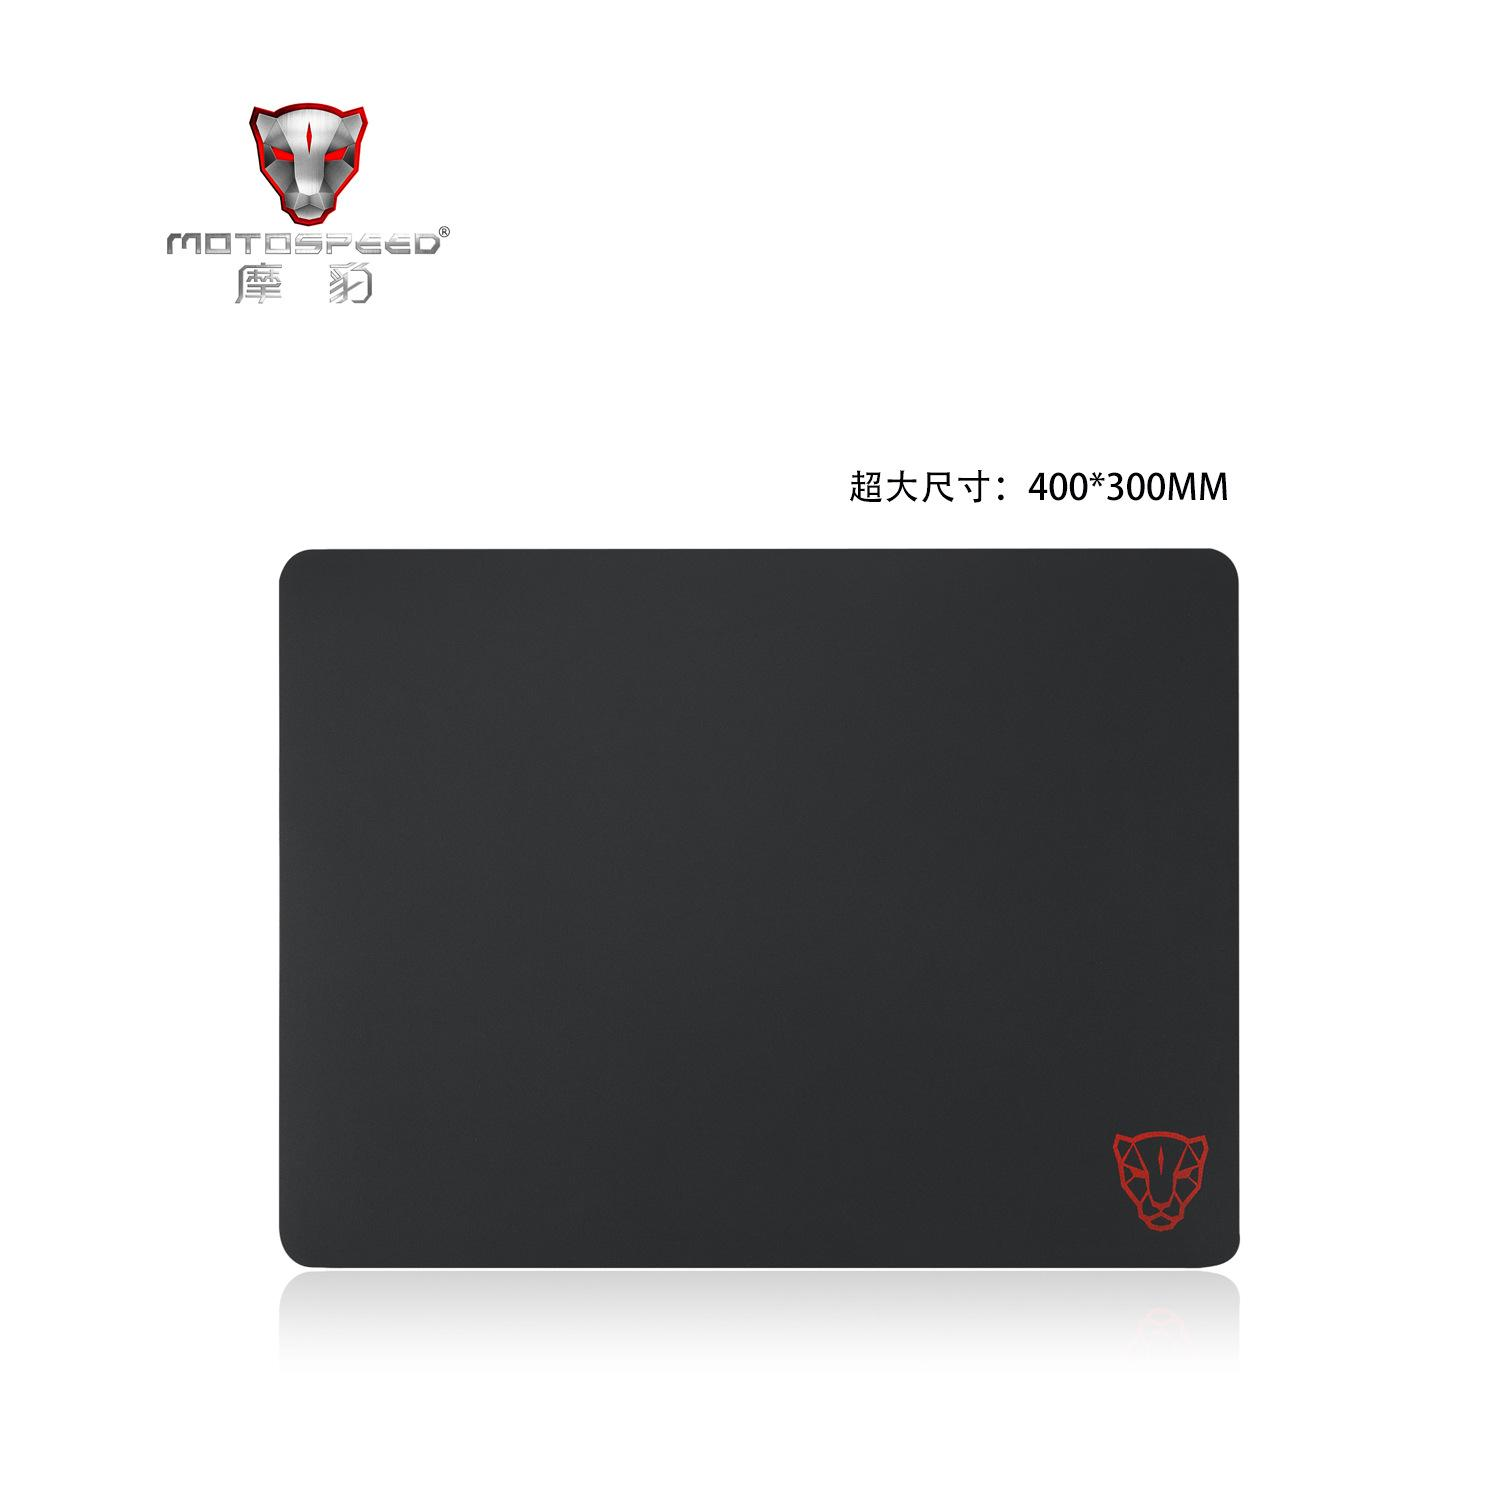 New P40 Gaming Mouse Pad Large Size 400*300 Silicone Material 3D Vulcanized  Mouse Pad Super Smooth